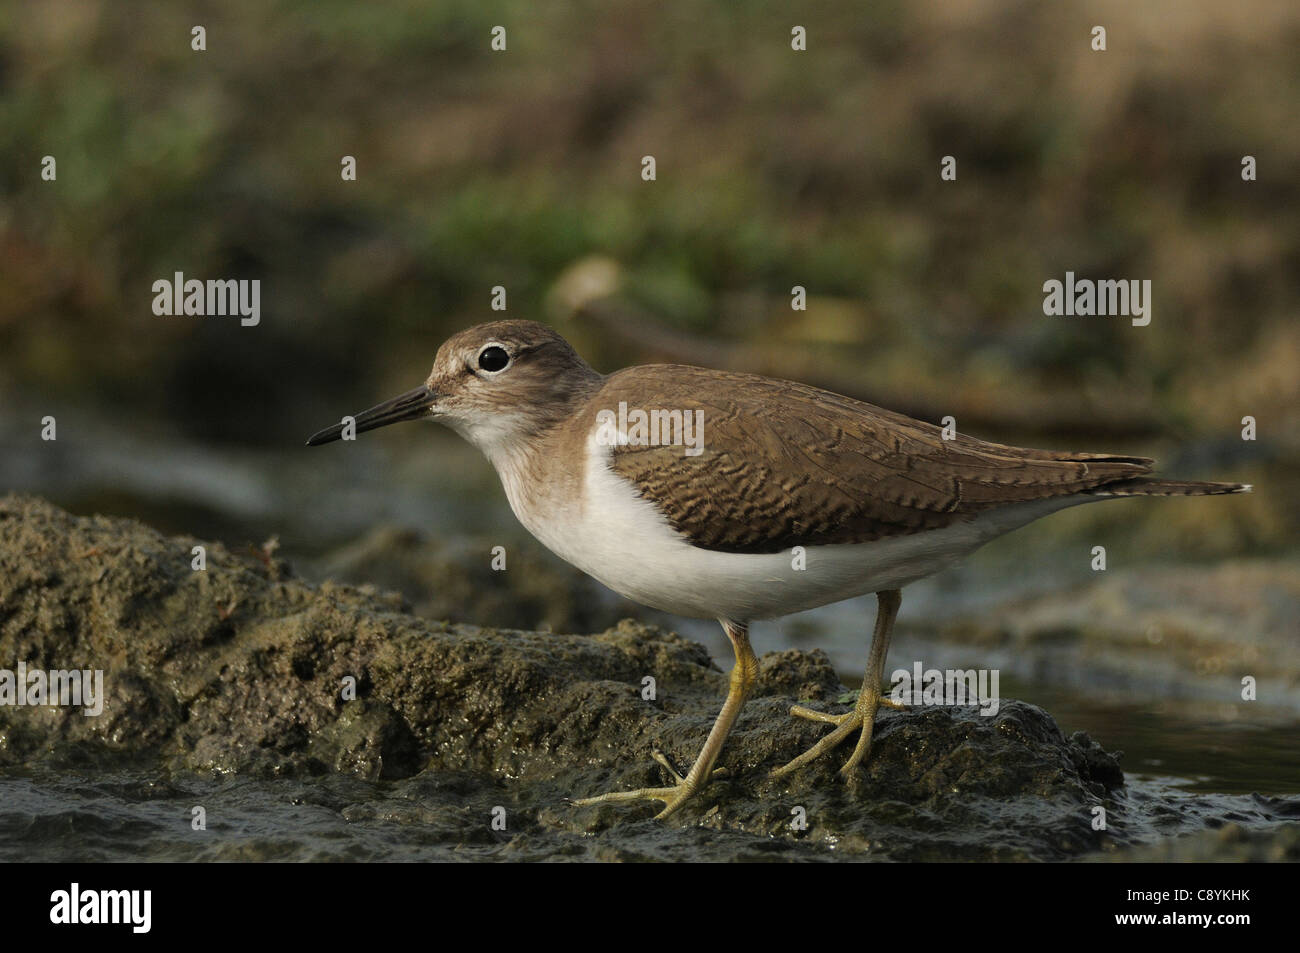 A Sandpiper in a stream in Bharatpur, India - Stock Image